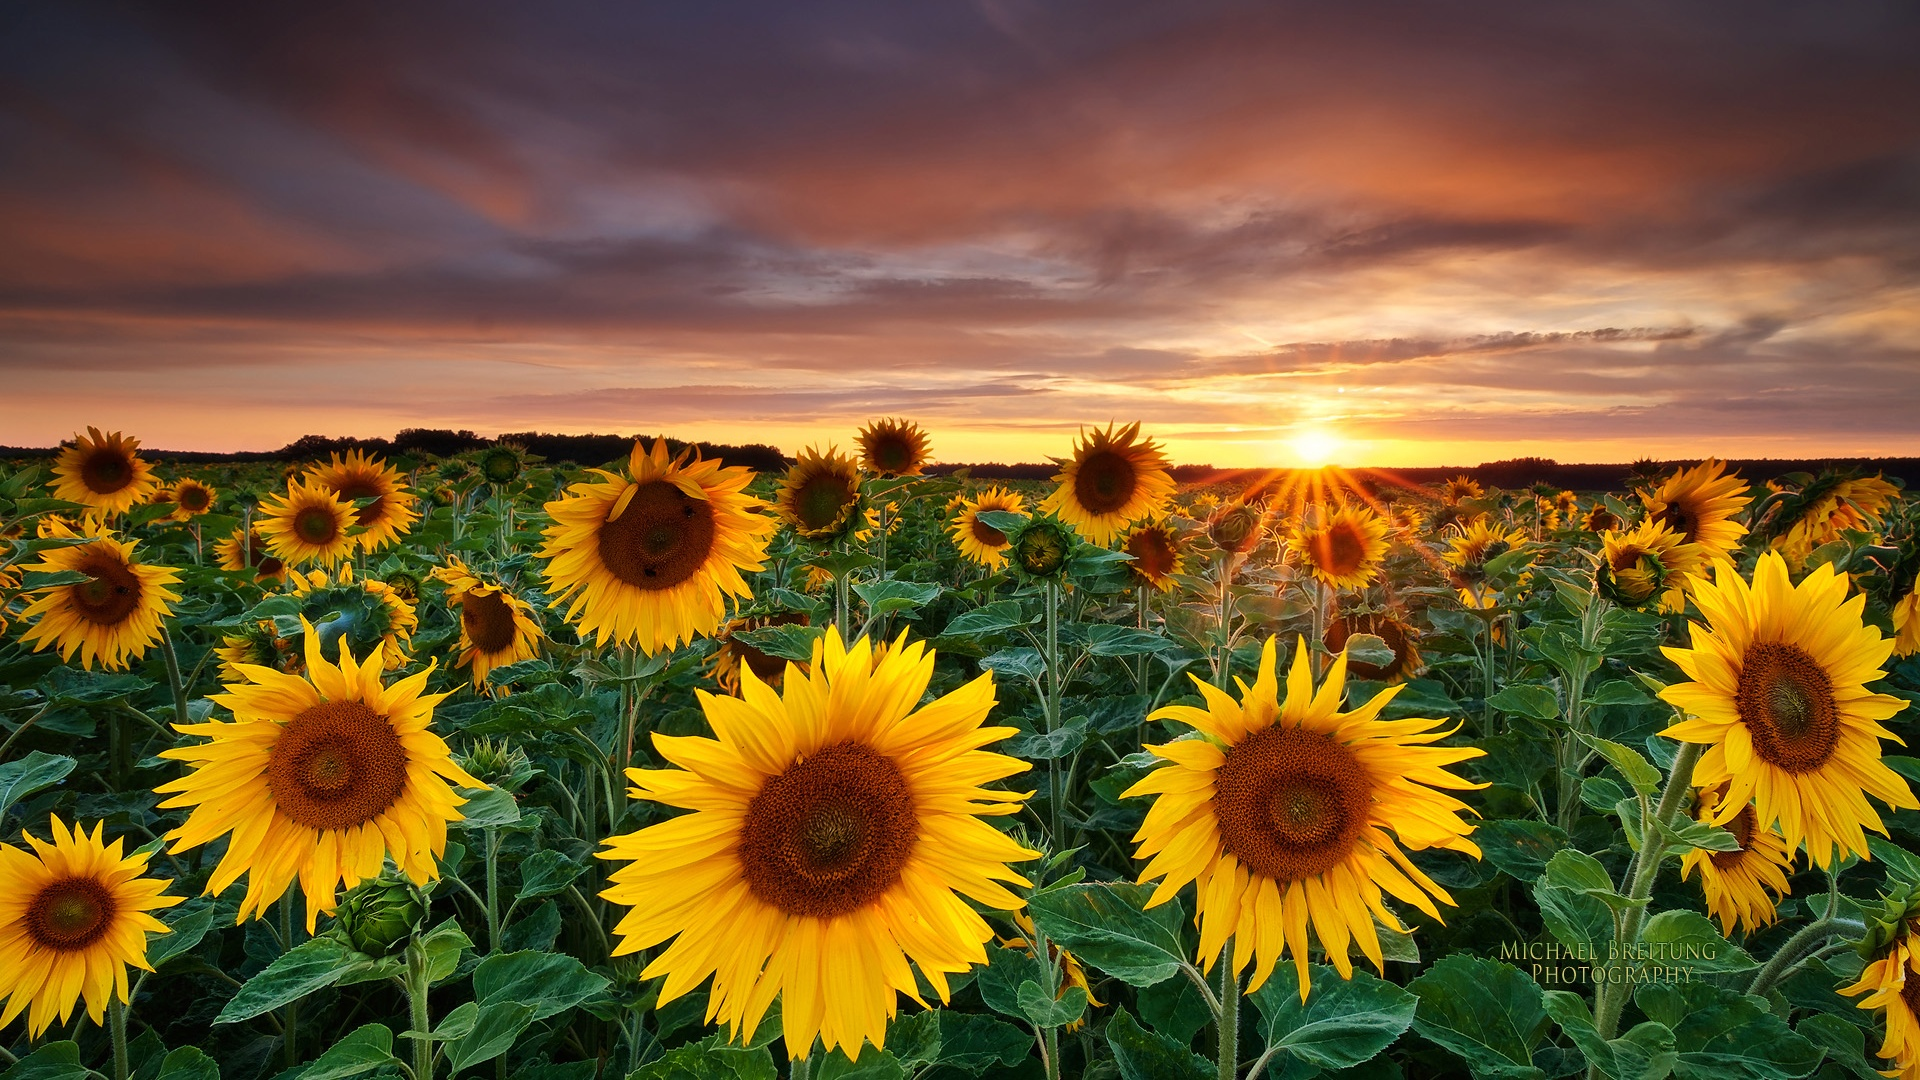 Sunflower Desktop Wallpapers Download 1920x1080